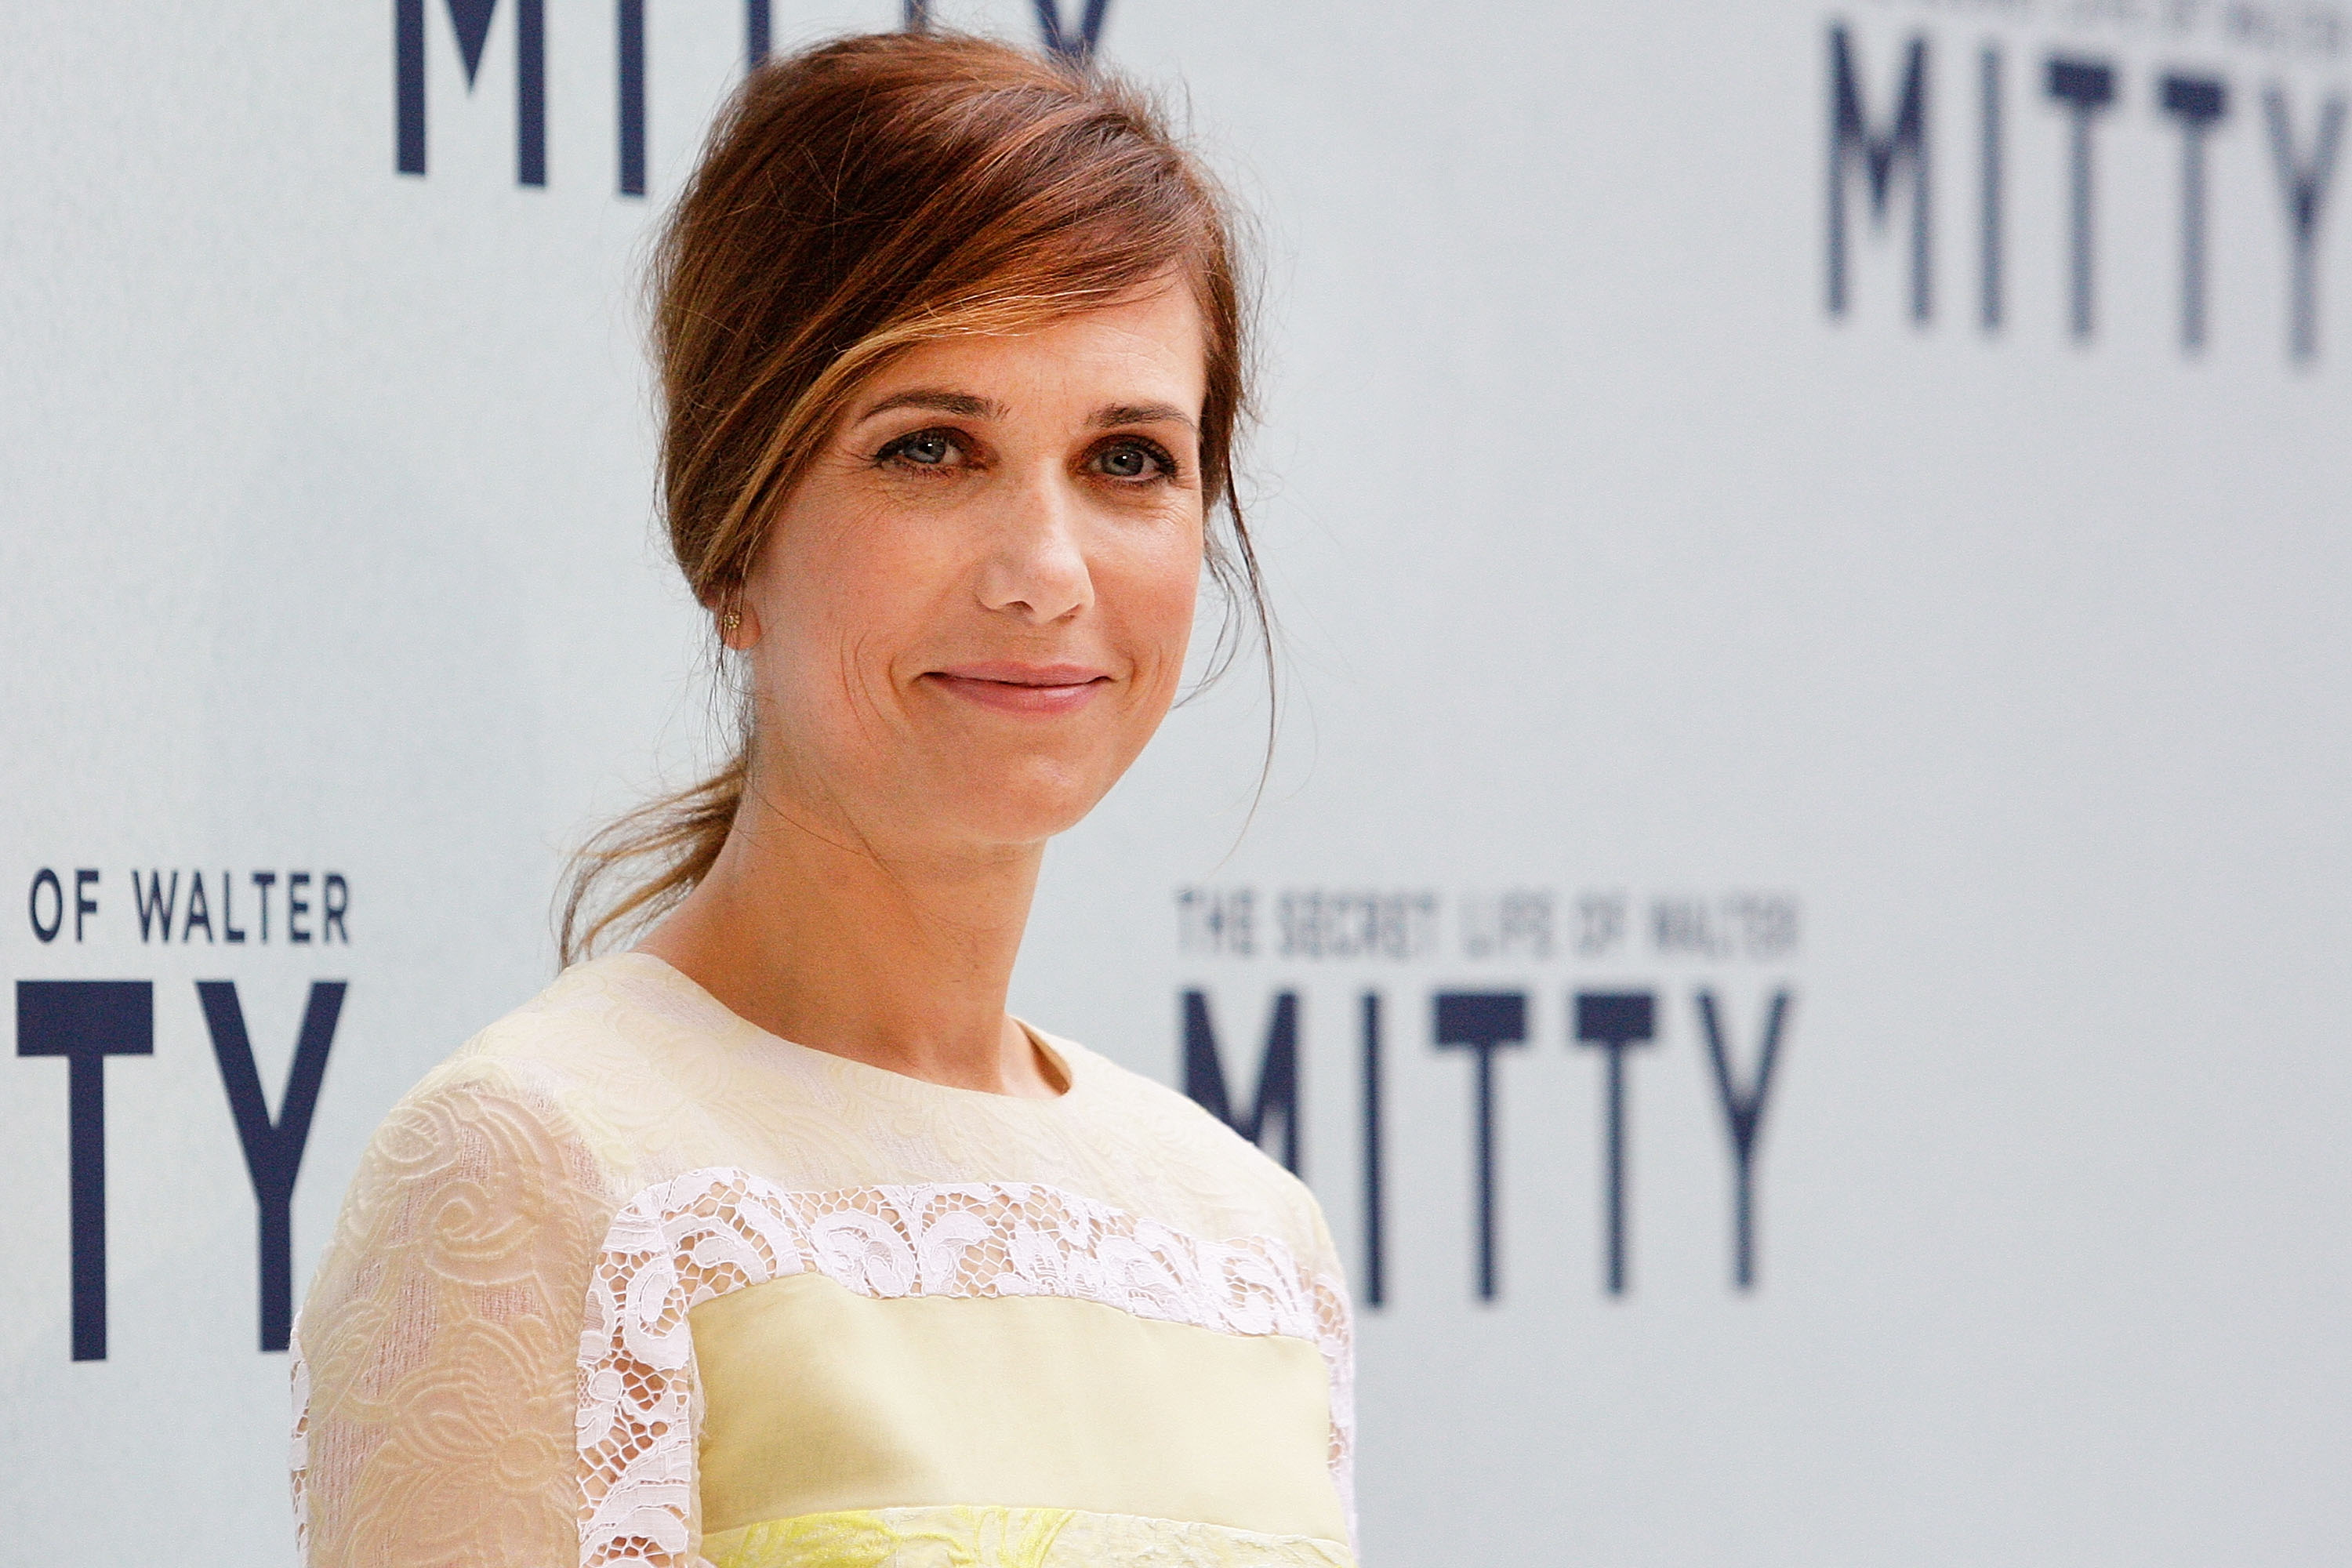 Kristen Wiig walks the red carpet at the Australian Premiere of The Secret Life of Walter Mitty at Sydney Entertainment Centre on November 21, 2013 in Sydney, Australia.